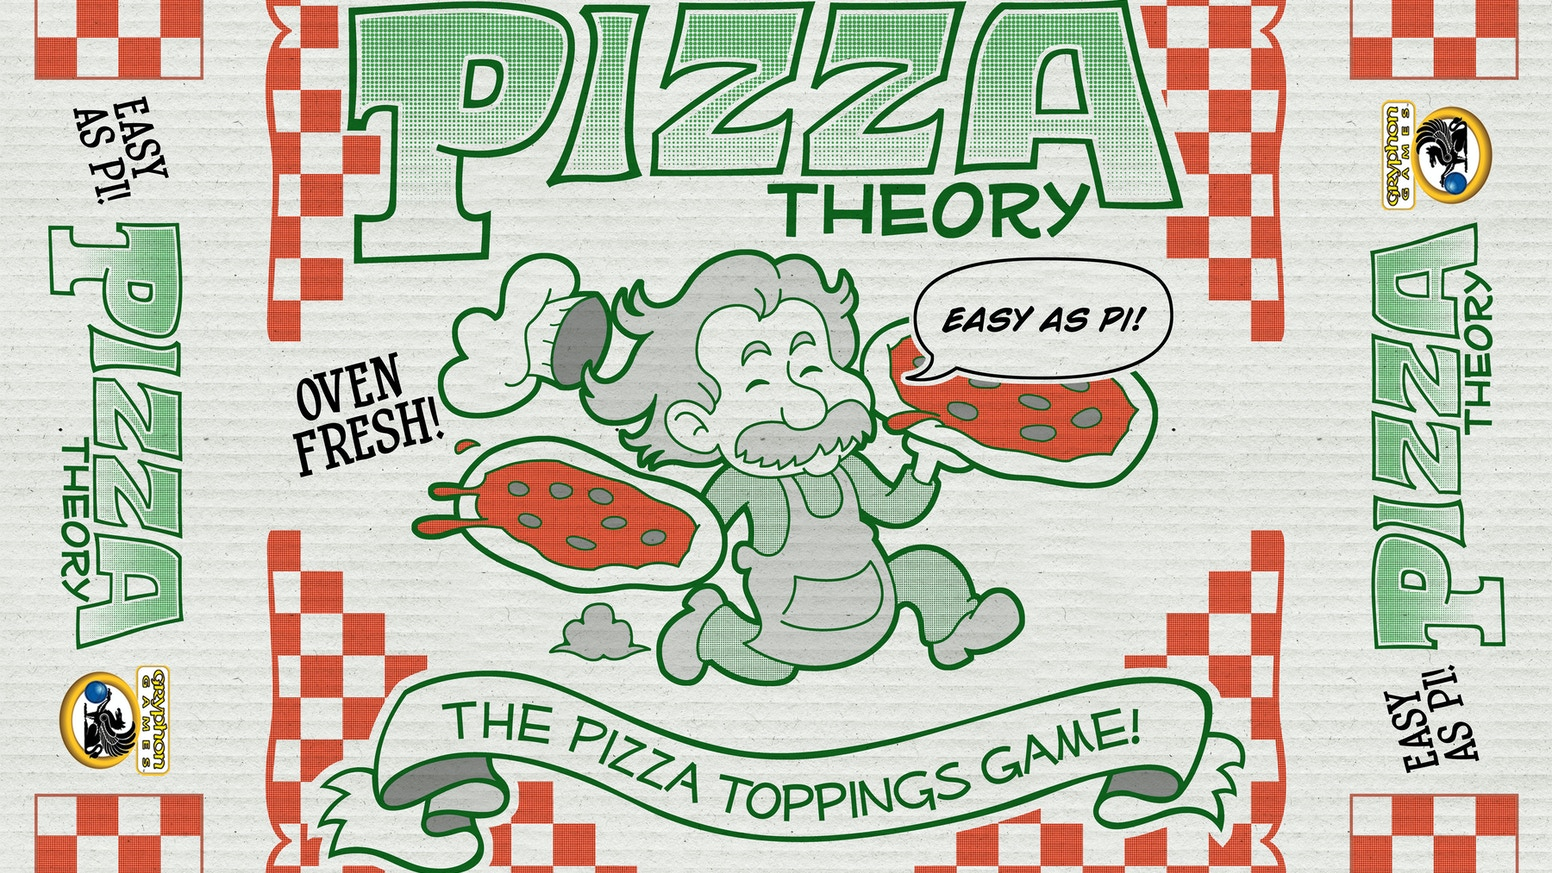 Greg and Brian Powers' deliciously fun game.  It may be as easy as pi, but can you come out on top?